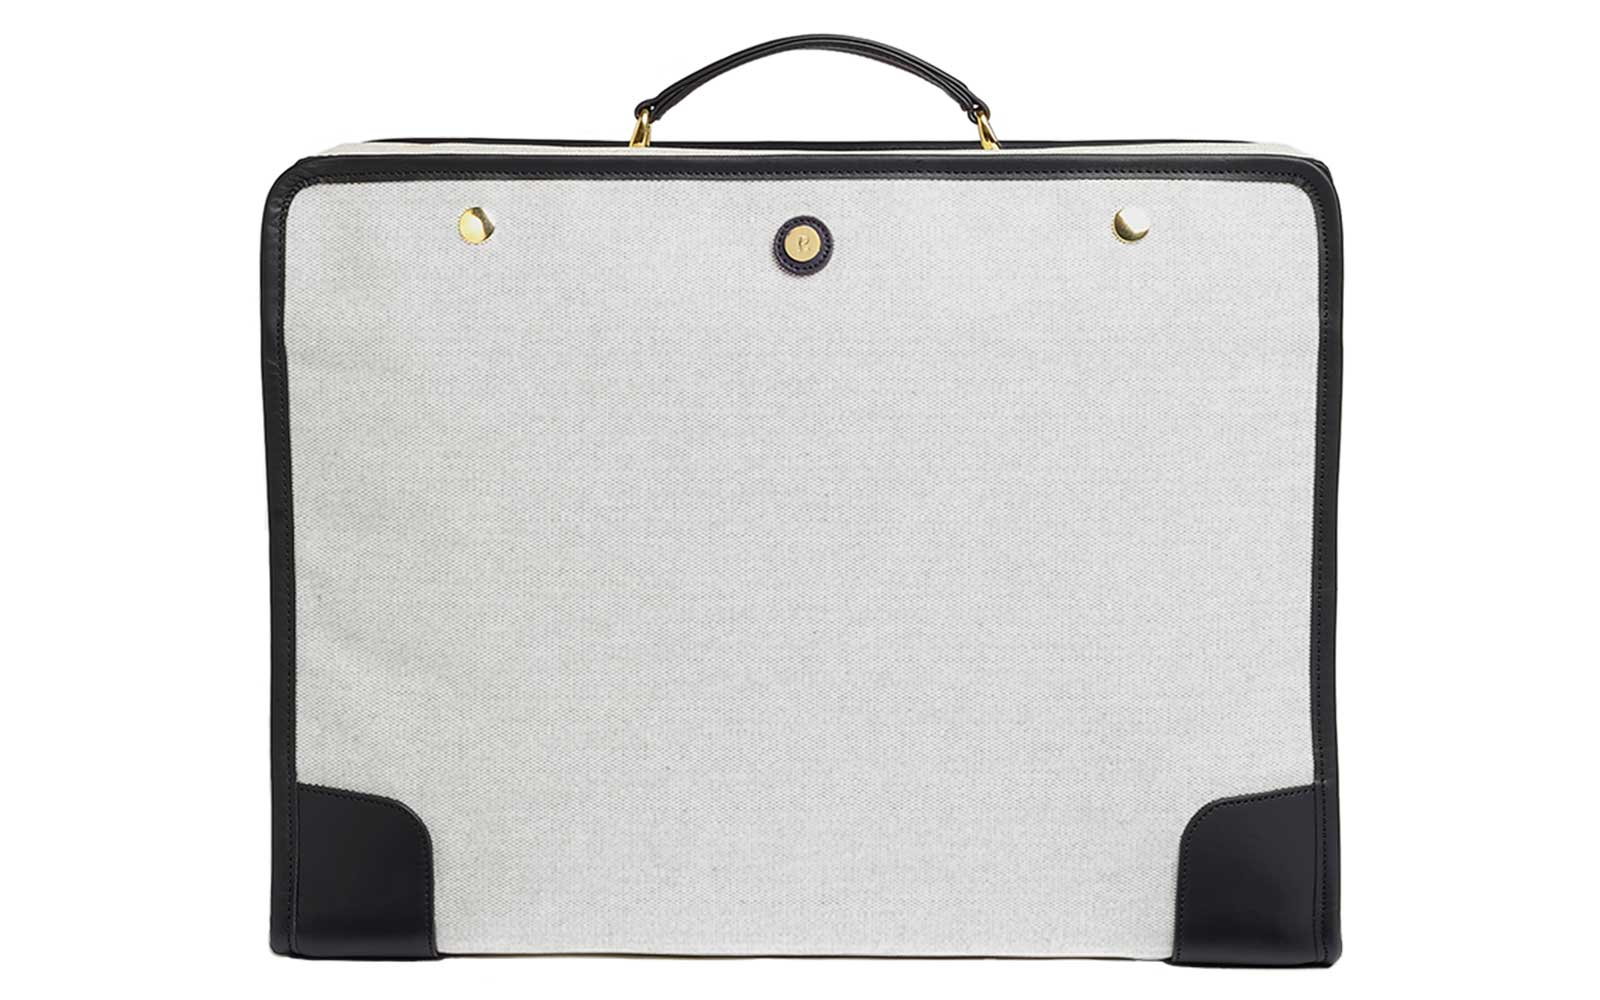 Domino stowaway bag by Paravel